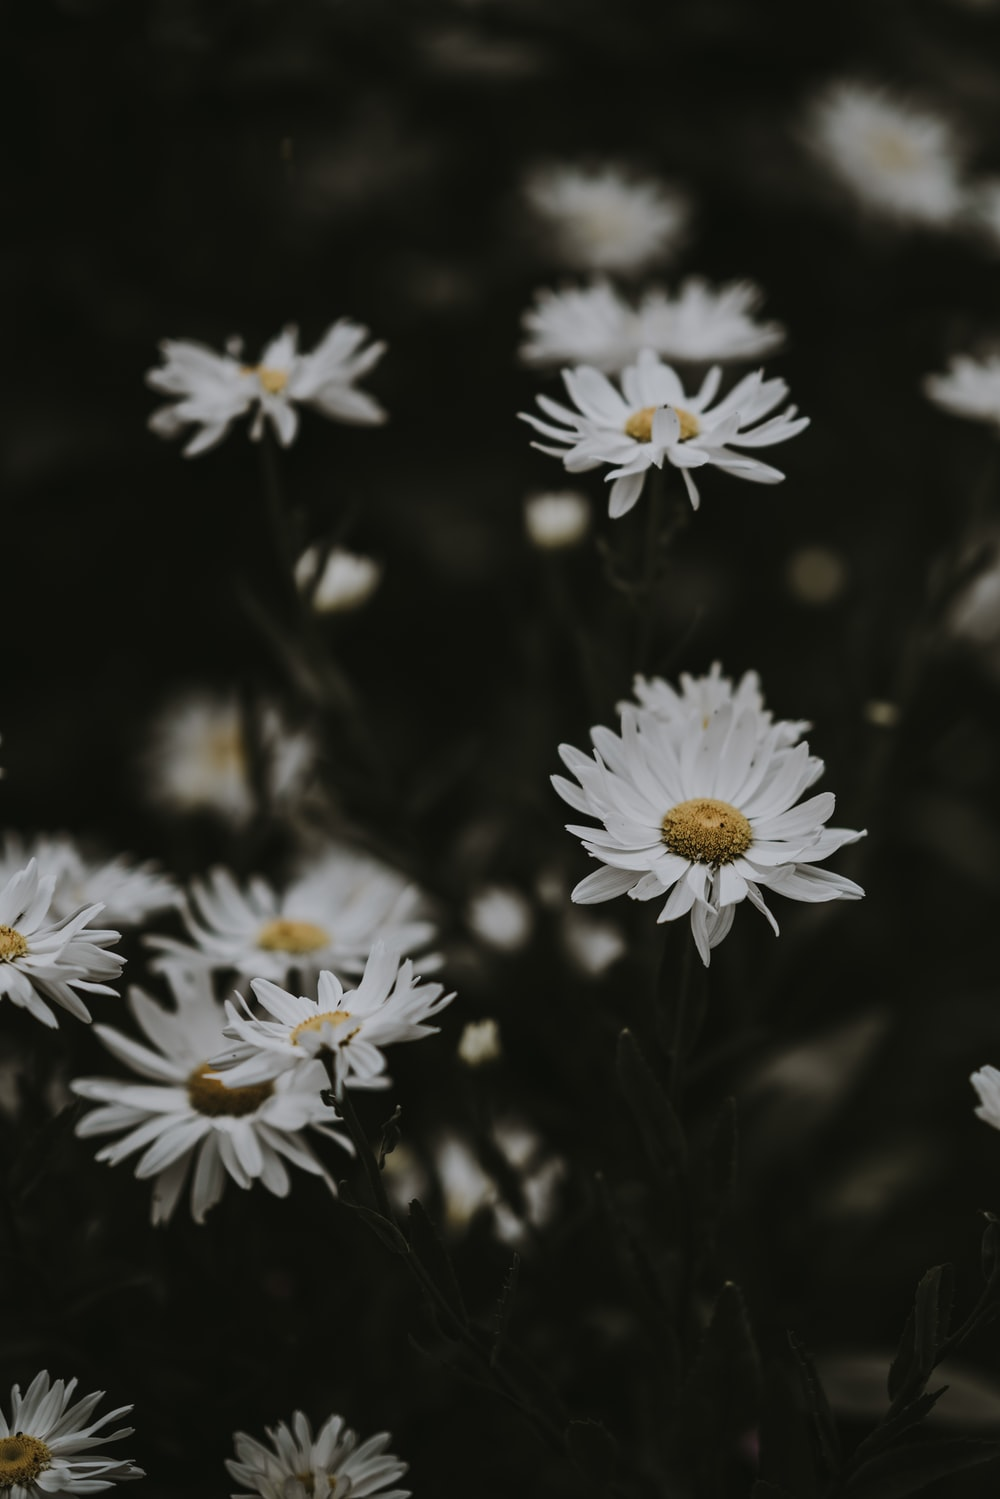 Big daisies photo by annie spratt anniespratt on unsplash close up photography of white daisy flowers izmirmasajfo